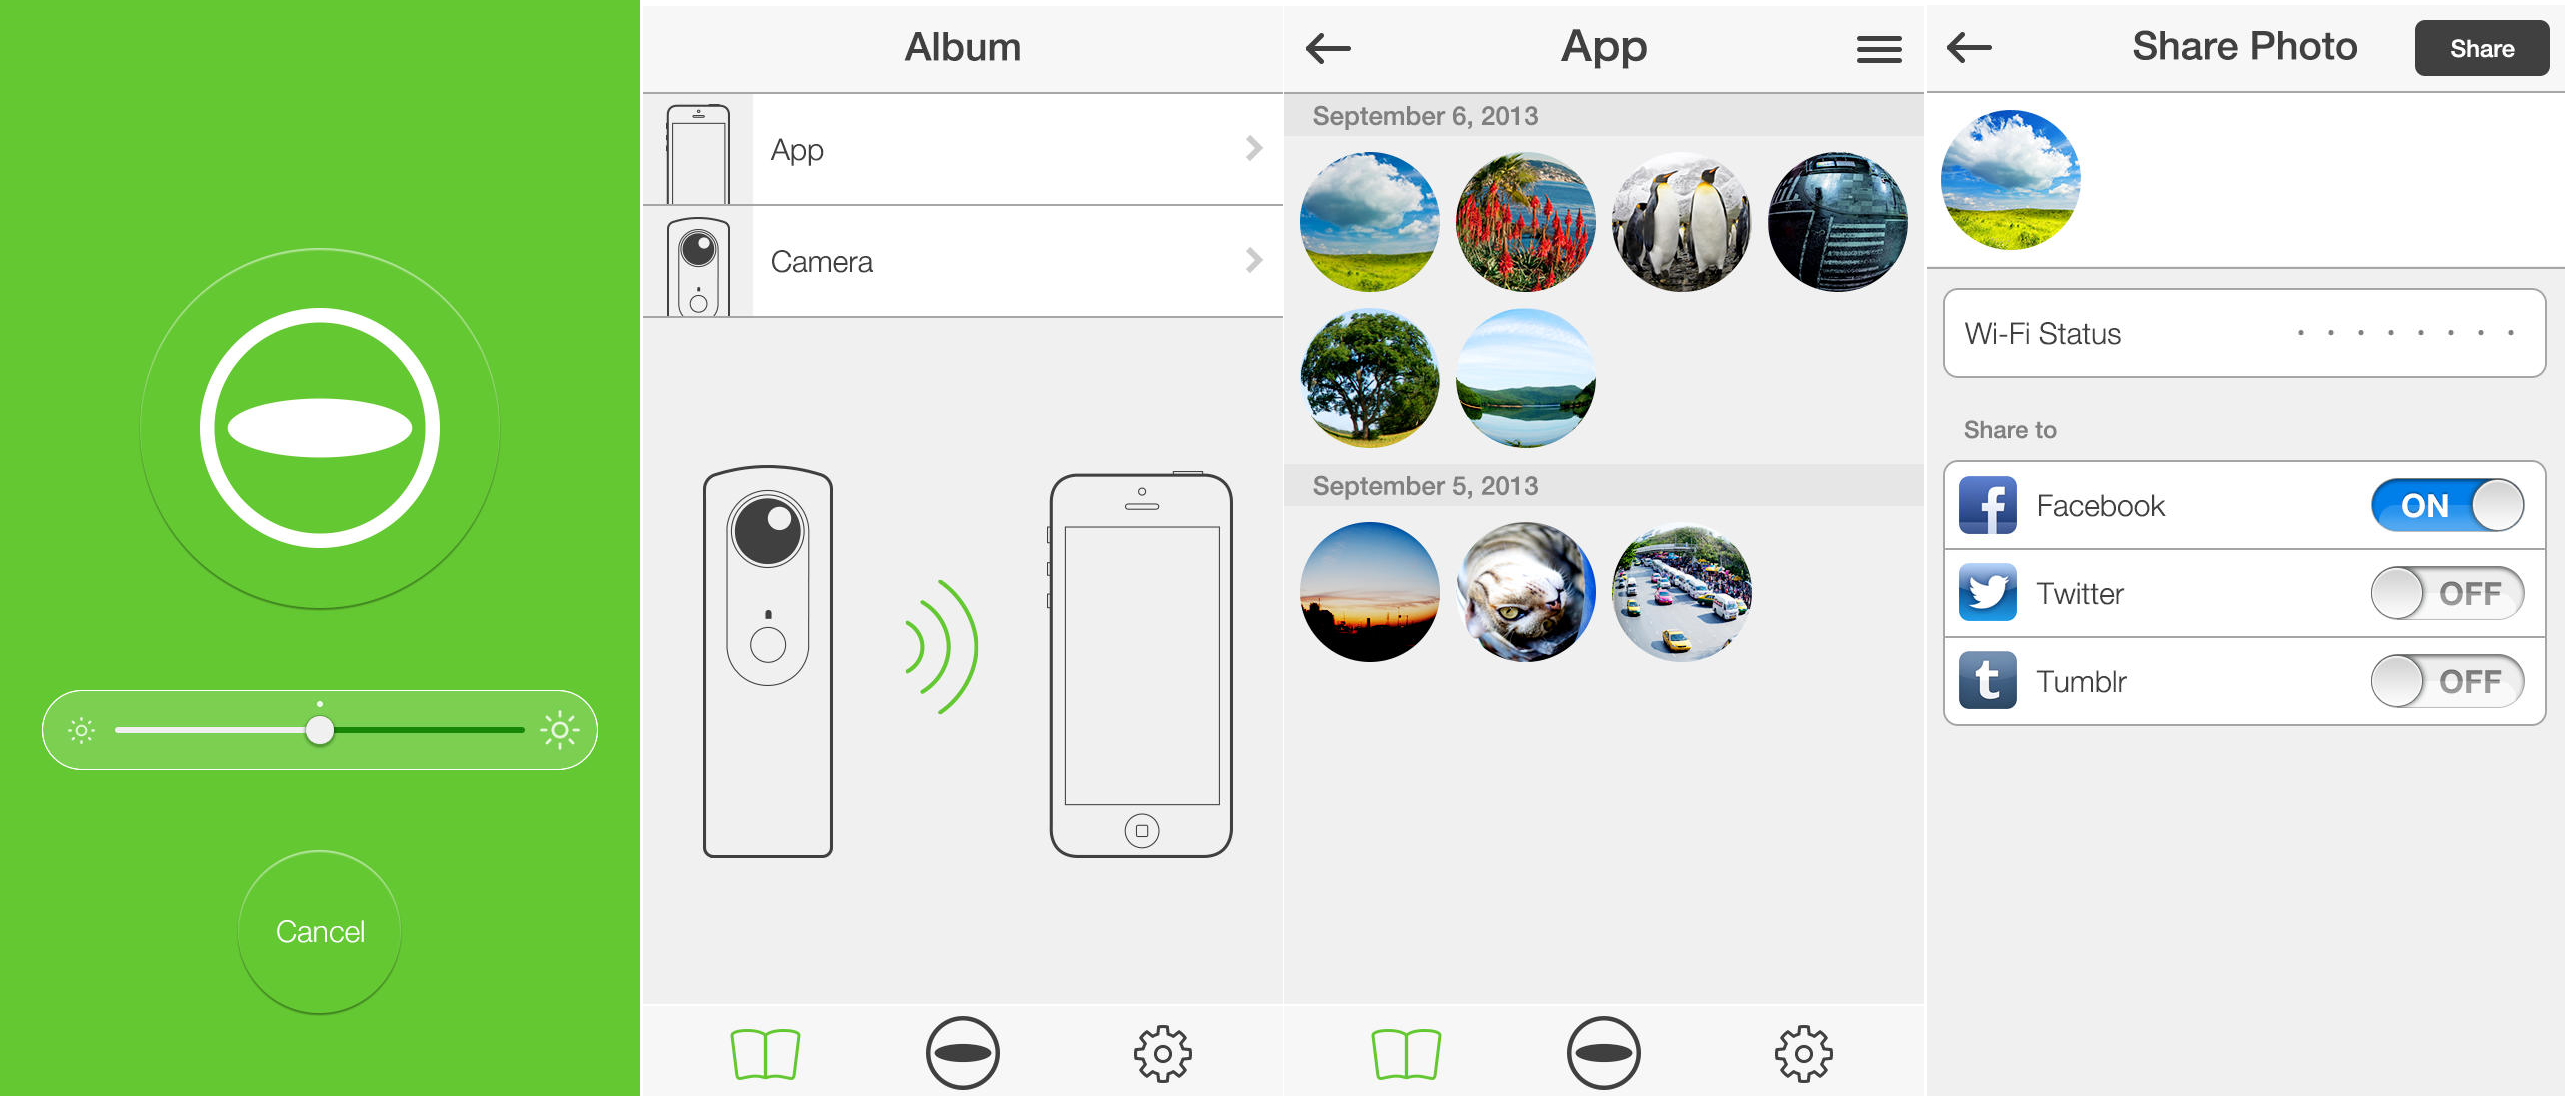 Theta iOS Ricoh launches $399 Theta camera bringing fully spherical images in a single shot